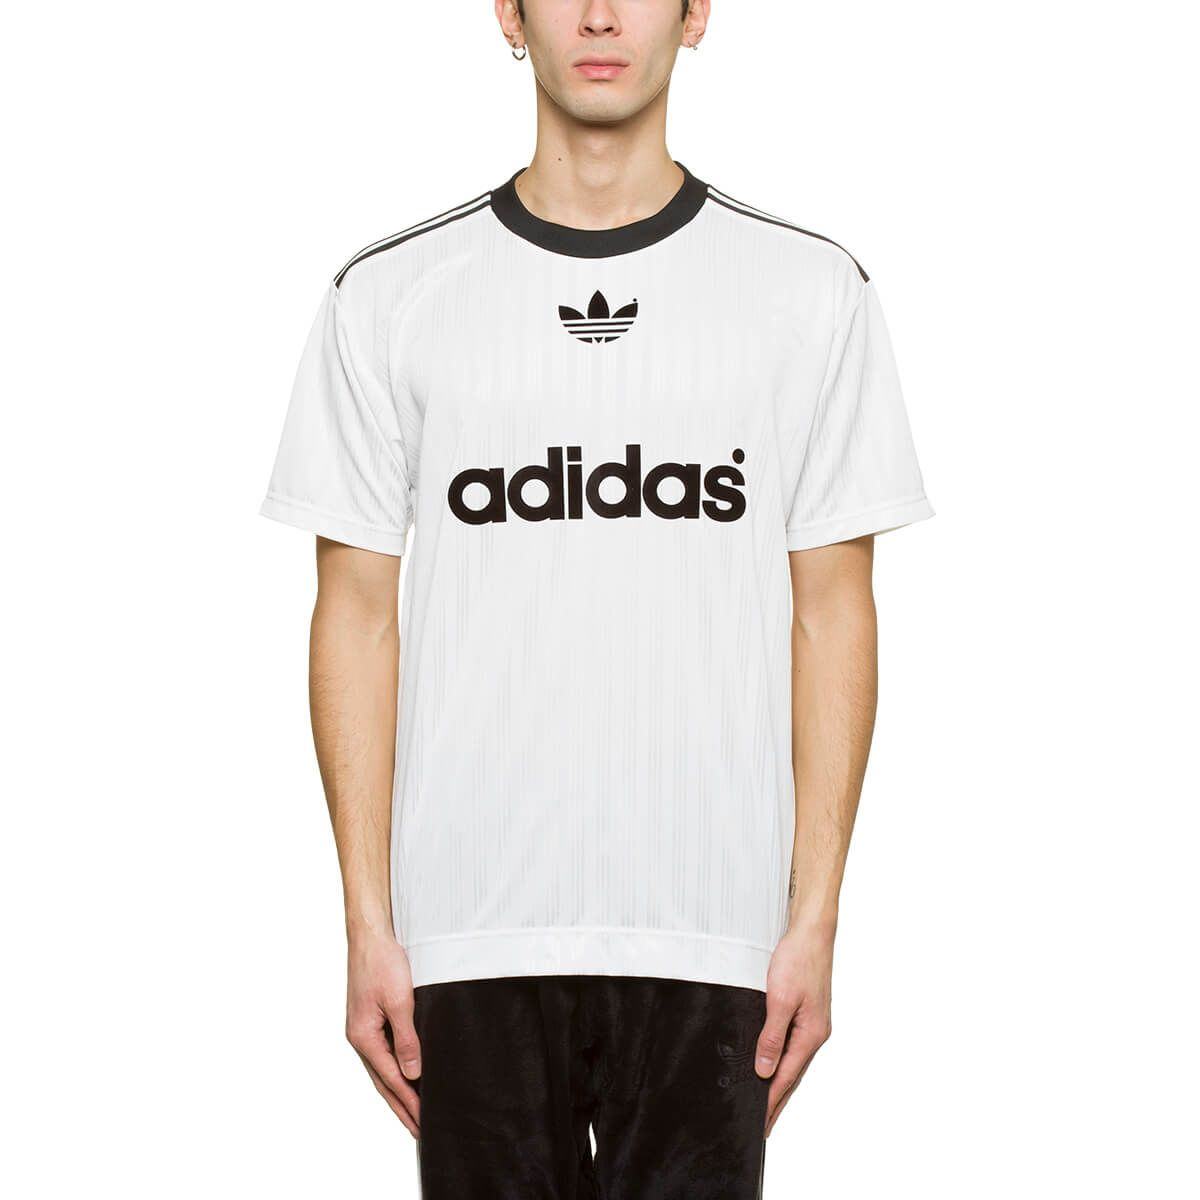 Adidas Originals Football Training T-shirt